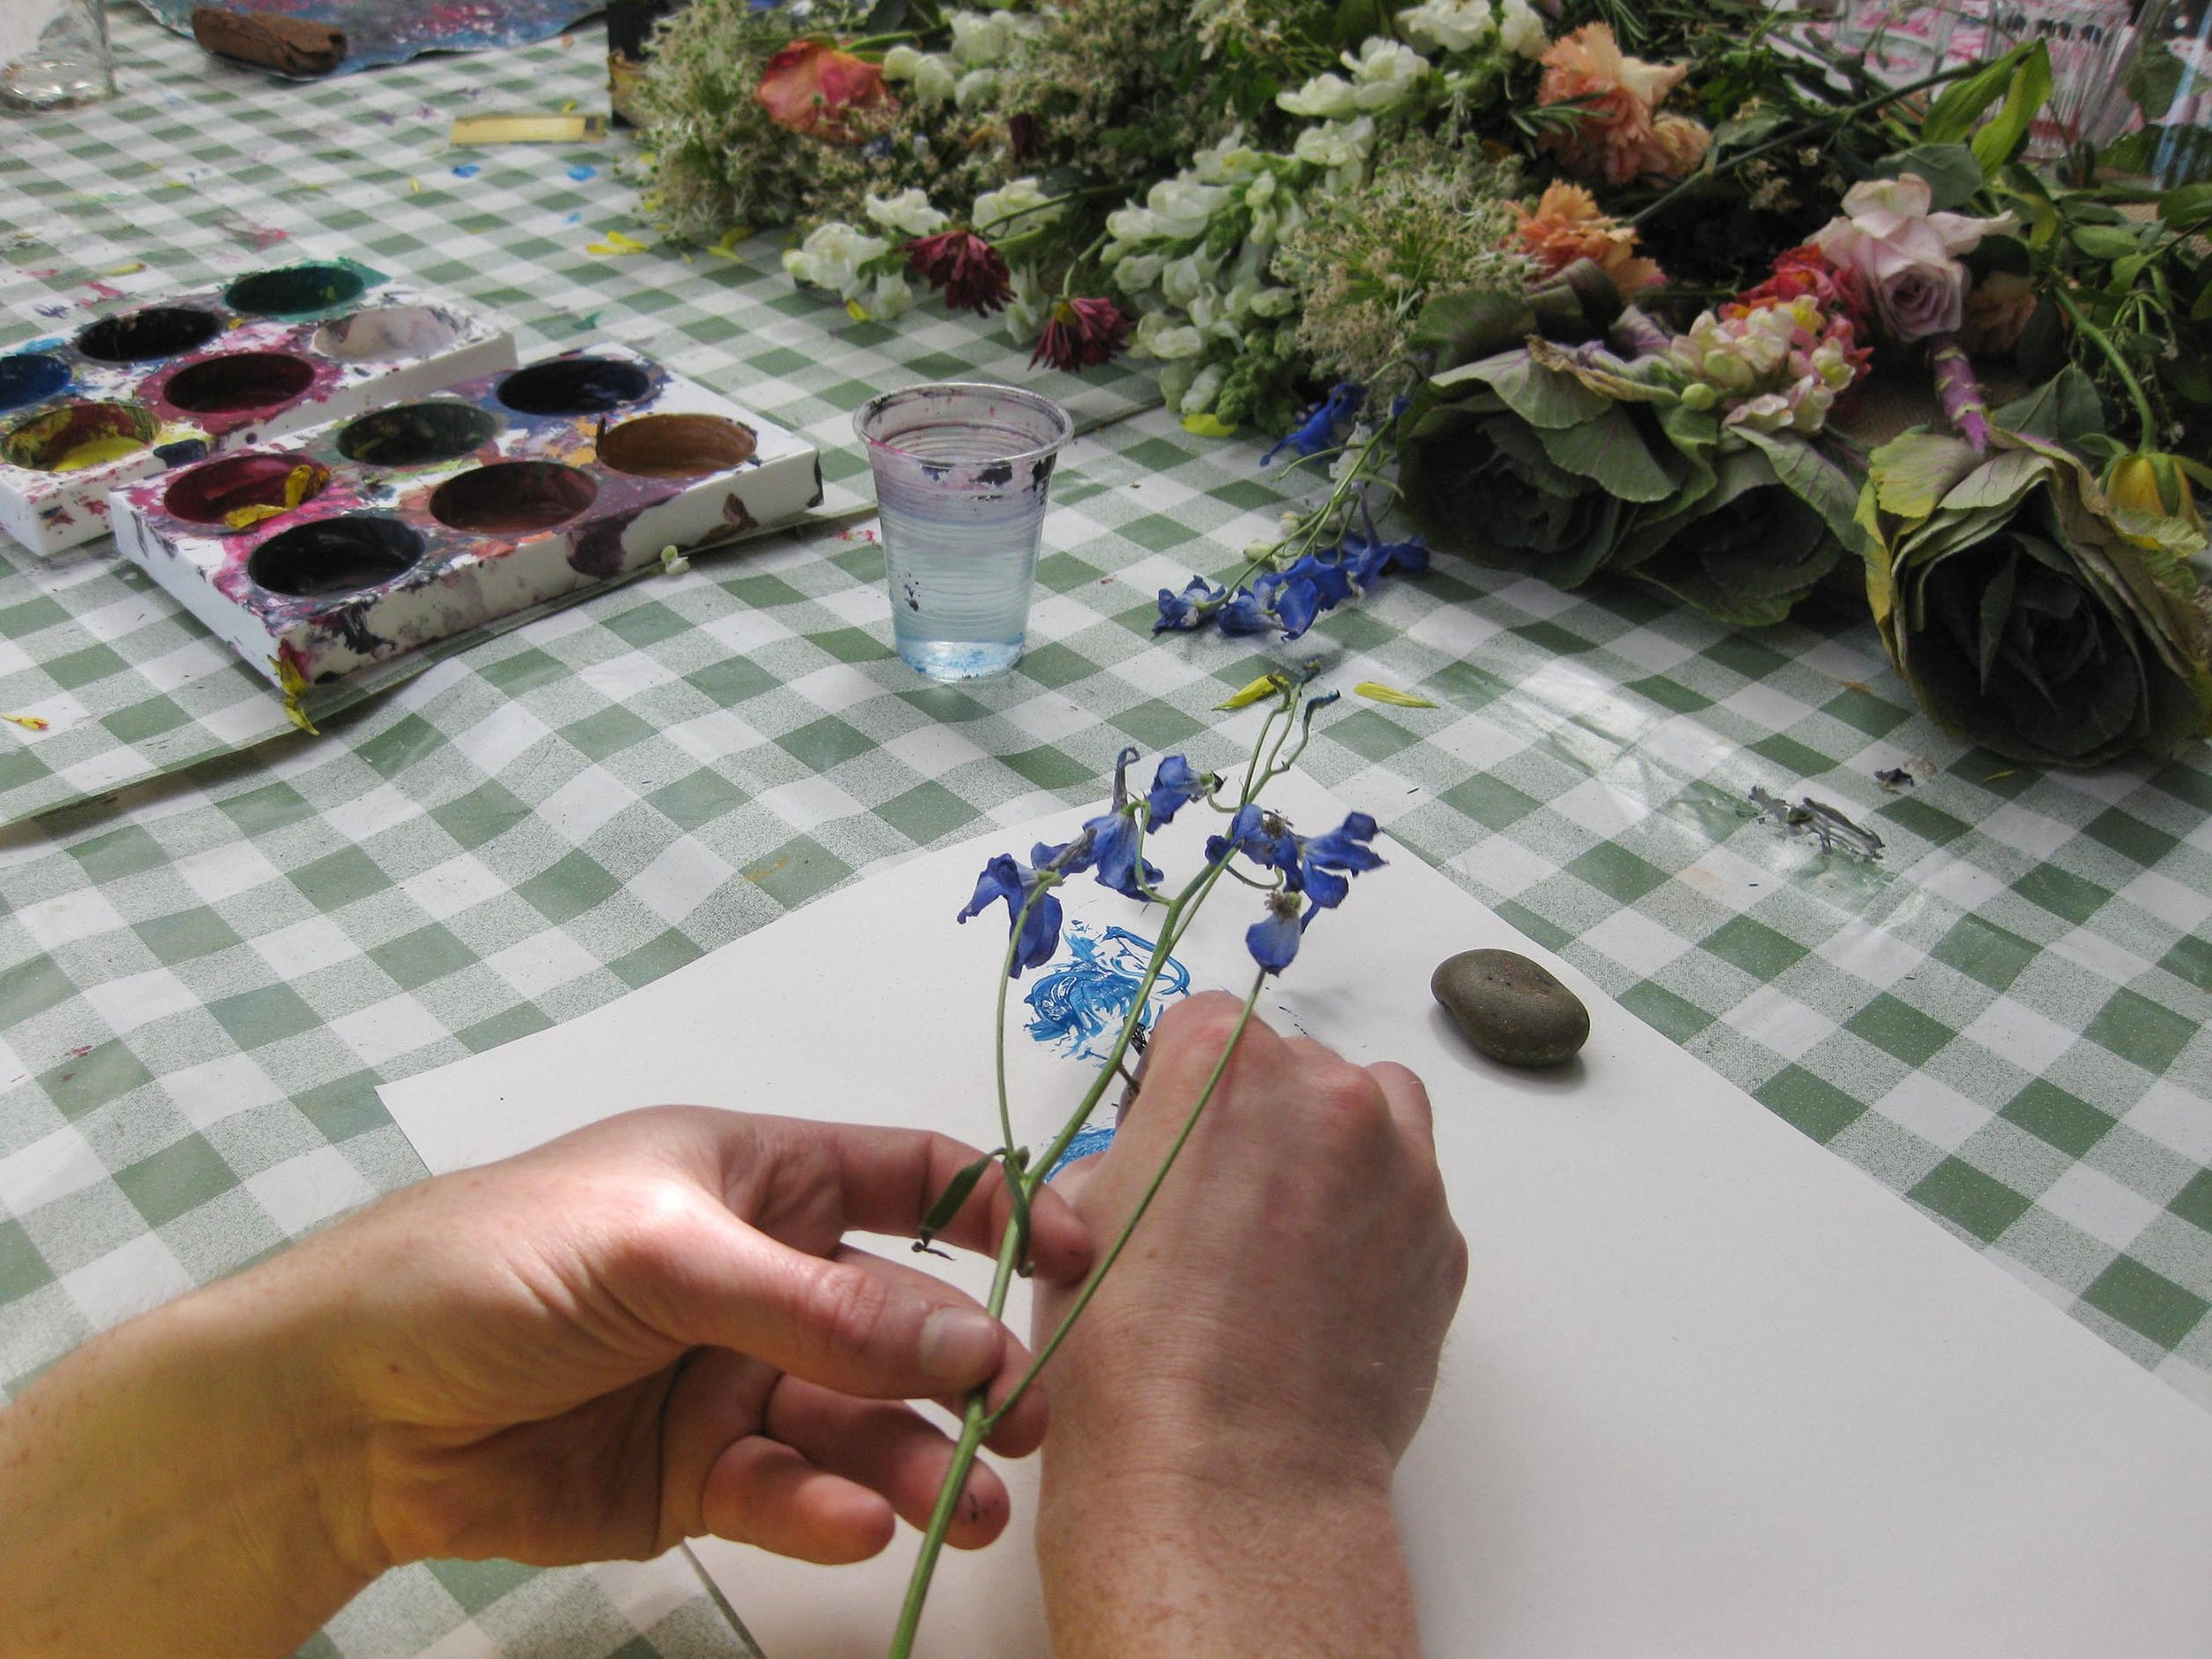 Painting flowers with flowers